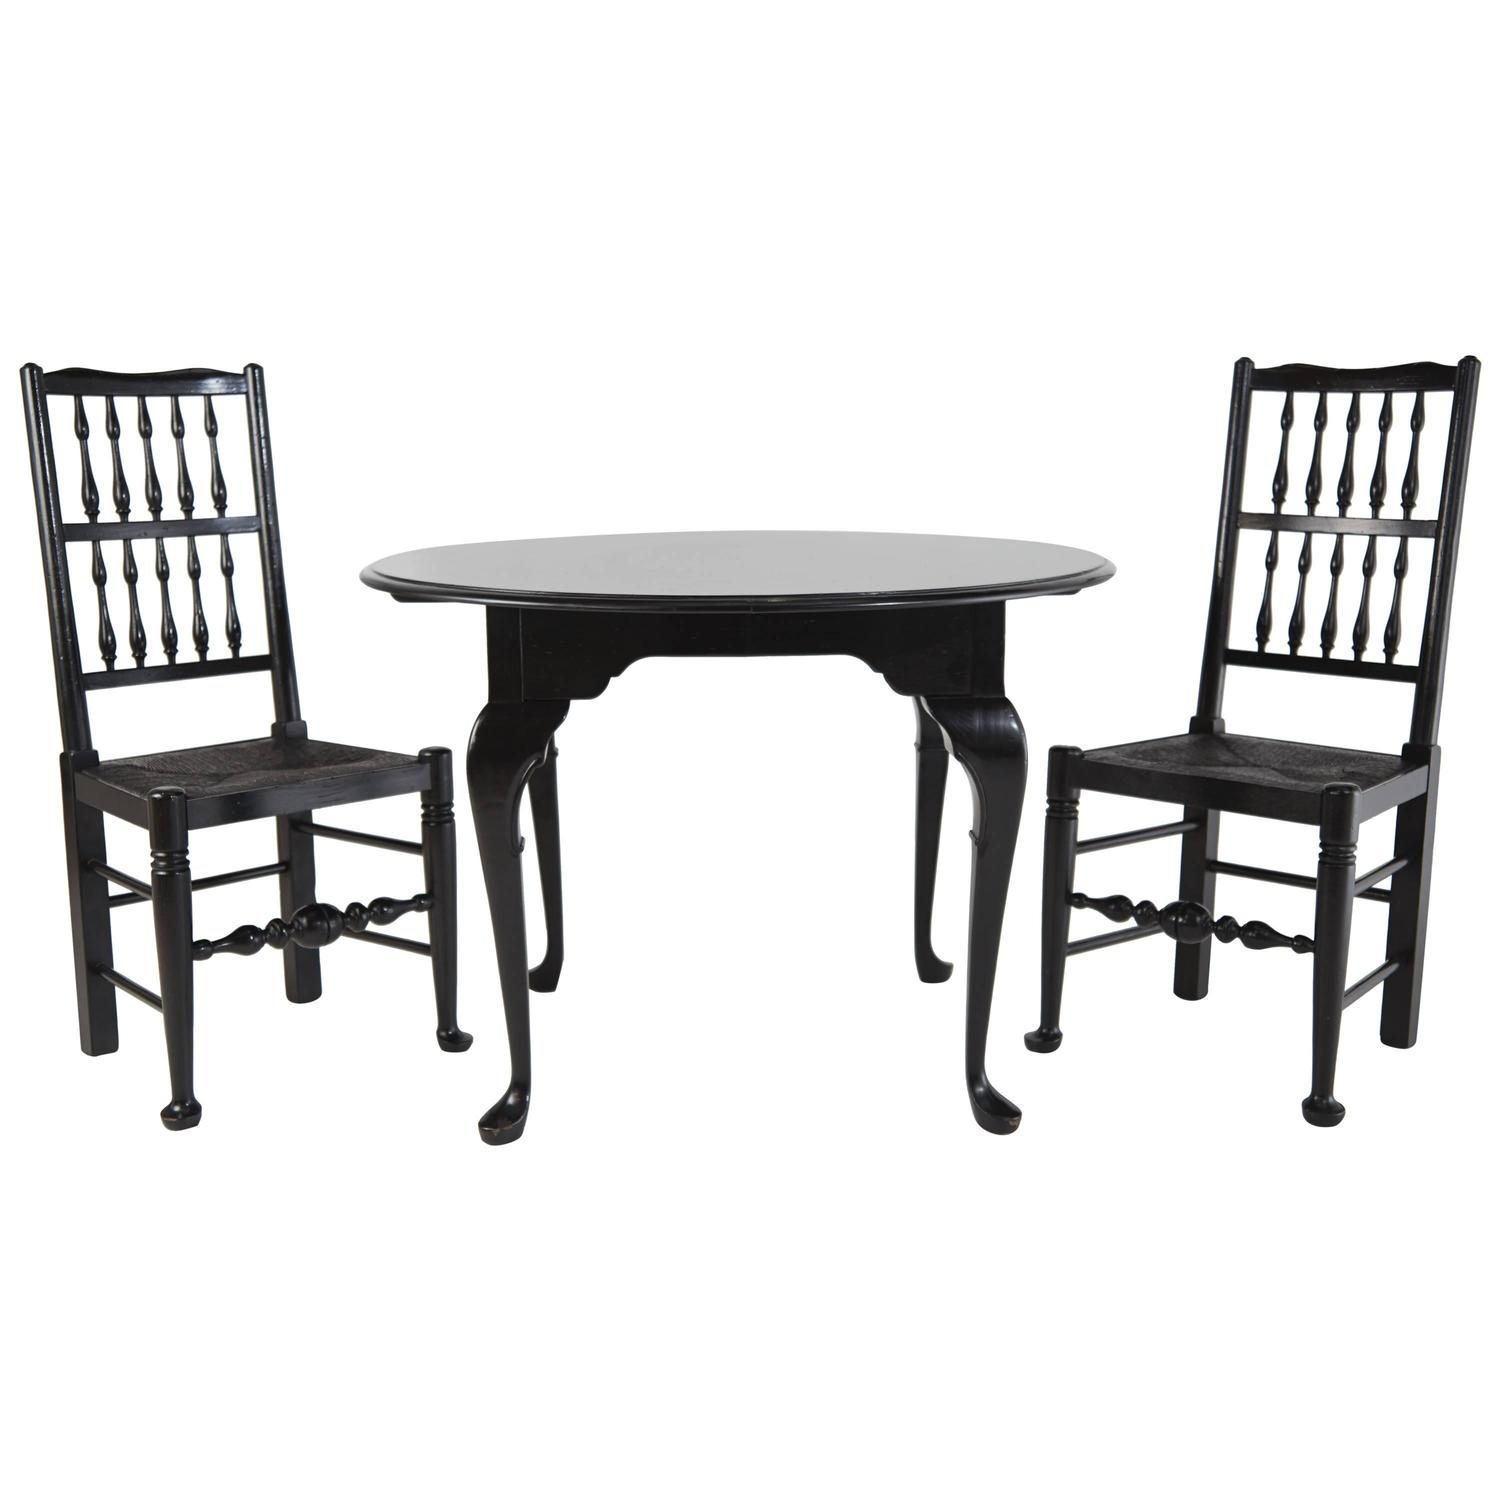 Kittinger Colonial Williamsburg Mahogany Dining Room Table For